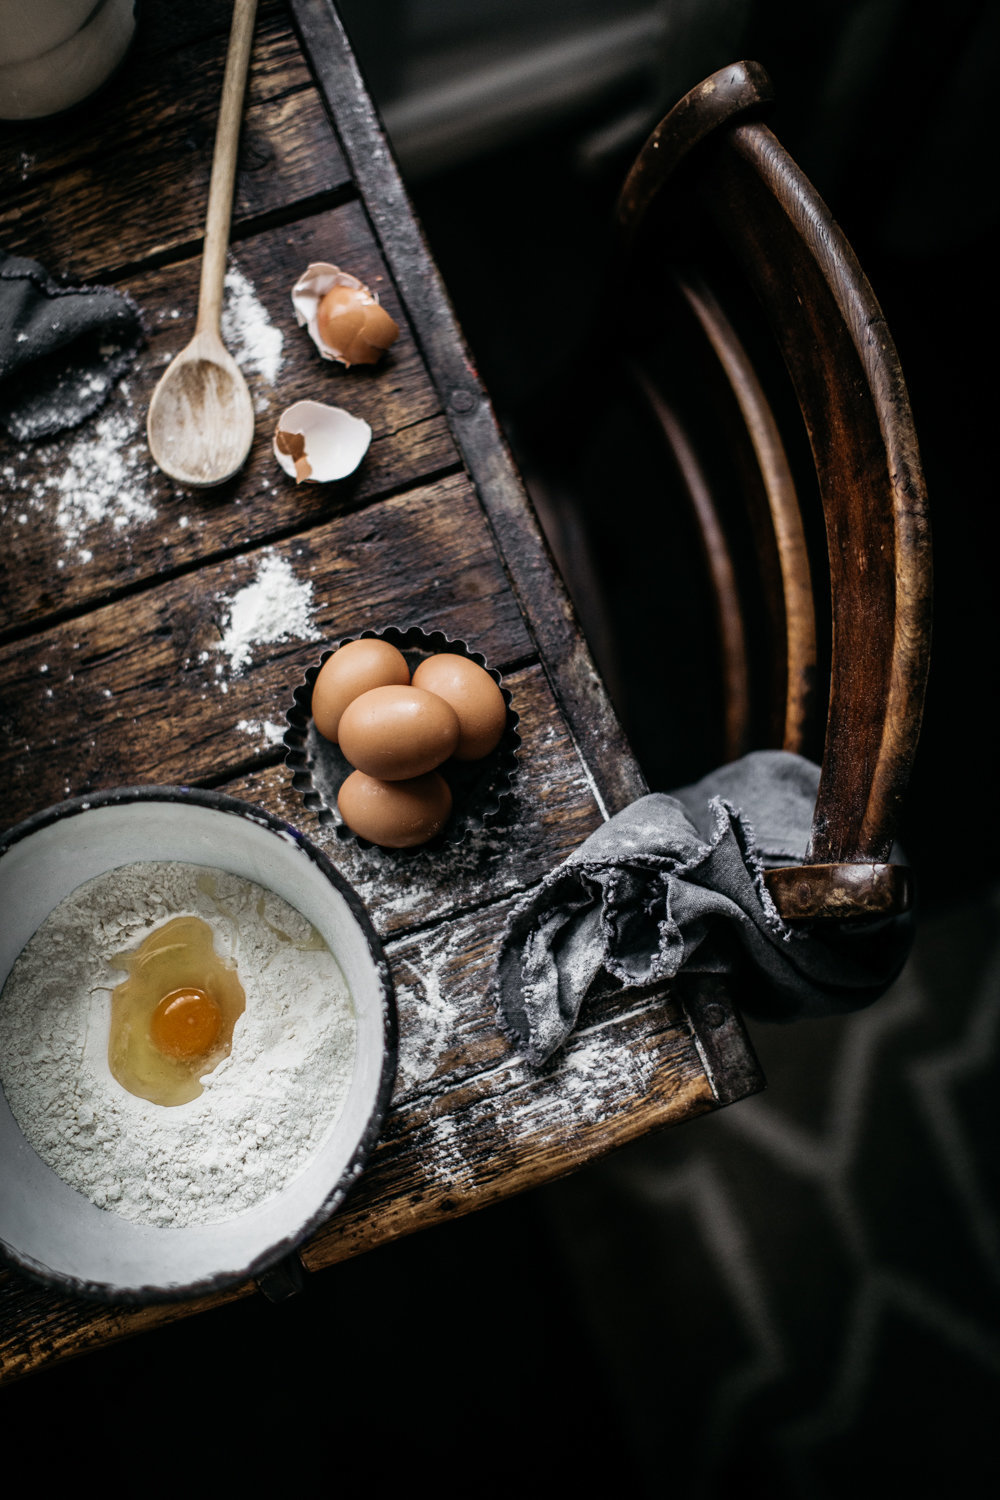 Flour & Eggs Food Photography | Back light - Anisa Sabet - Photographer-28